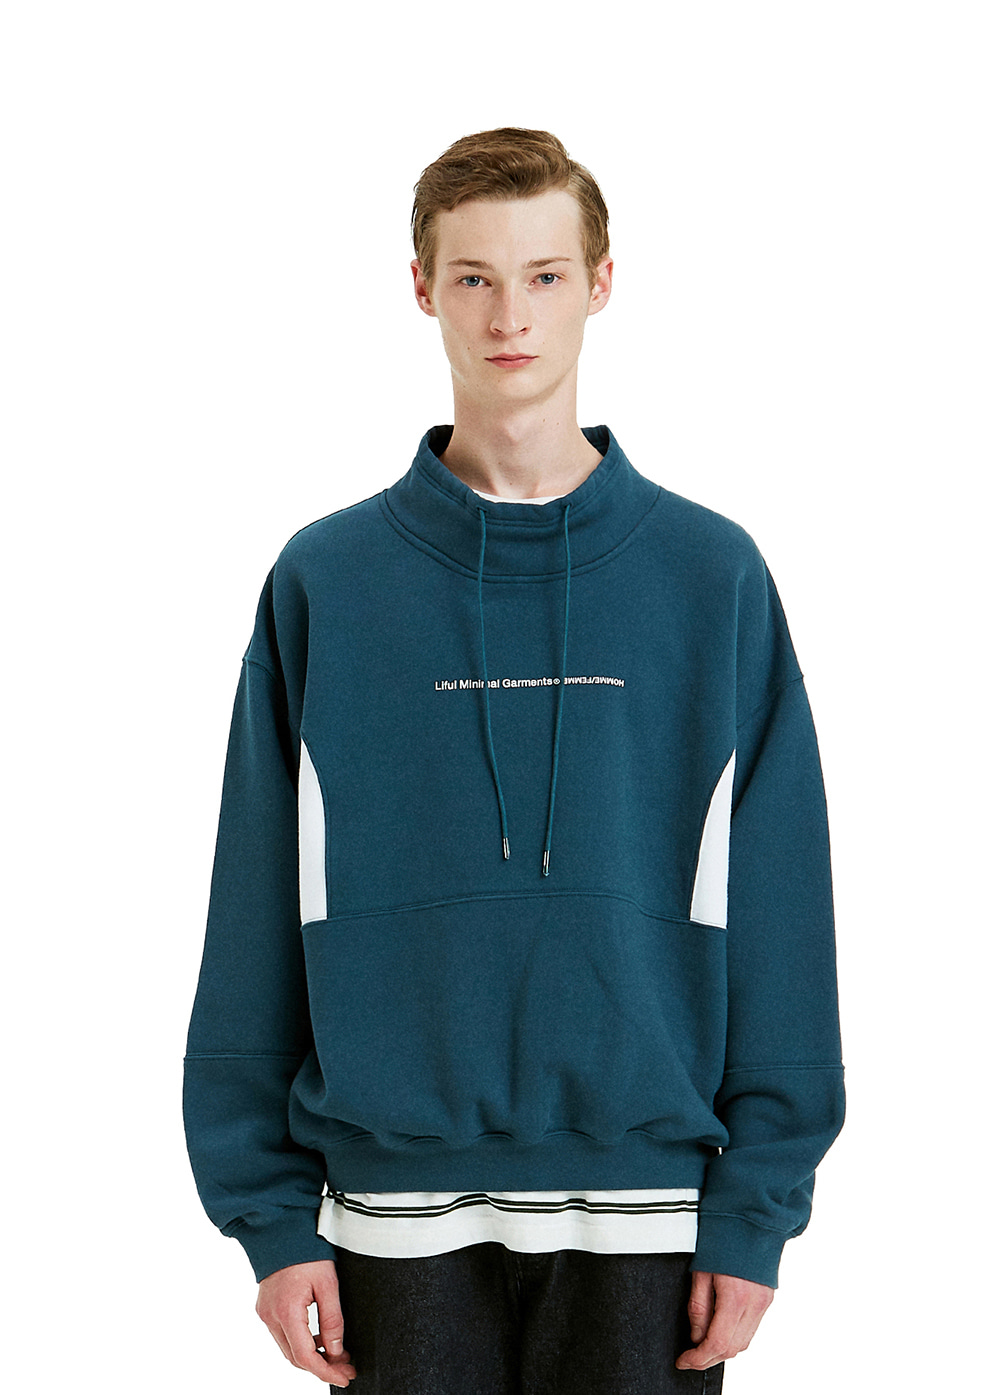 WIDE TURTLENECK SWEATSHIRT green